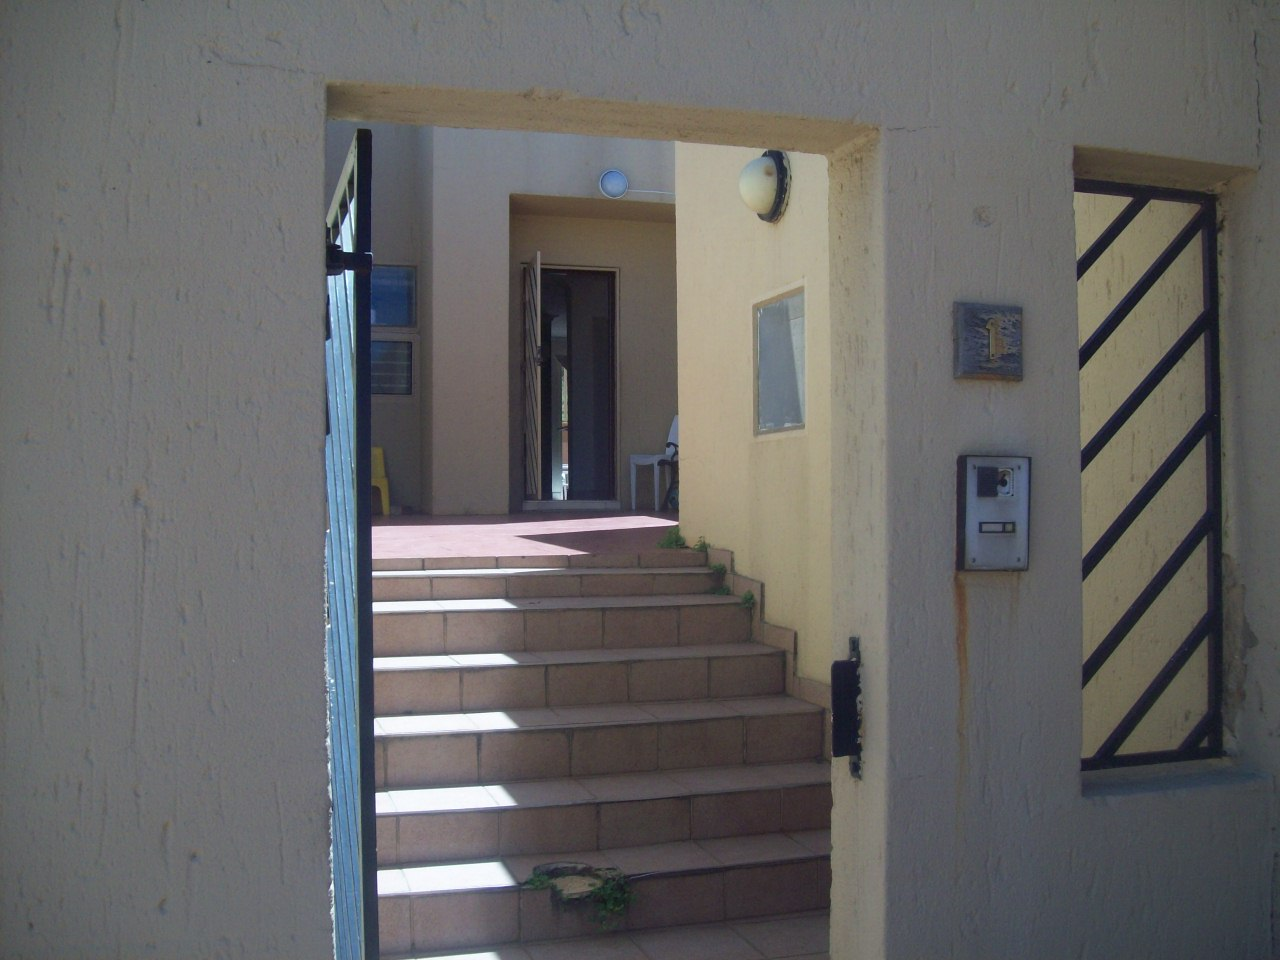 3 Bedroom Townhouse for sale in Bassonia ENT0071278 : photo#7